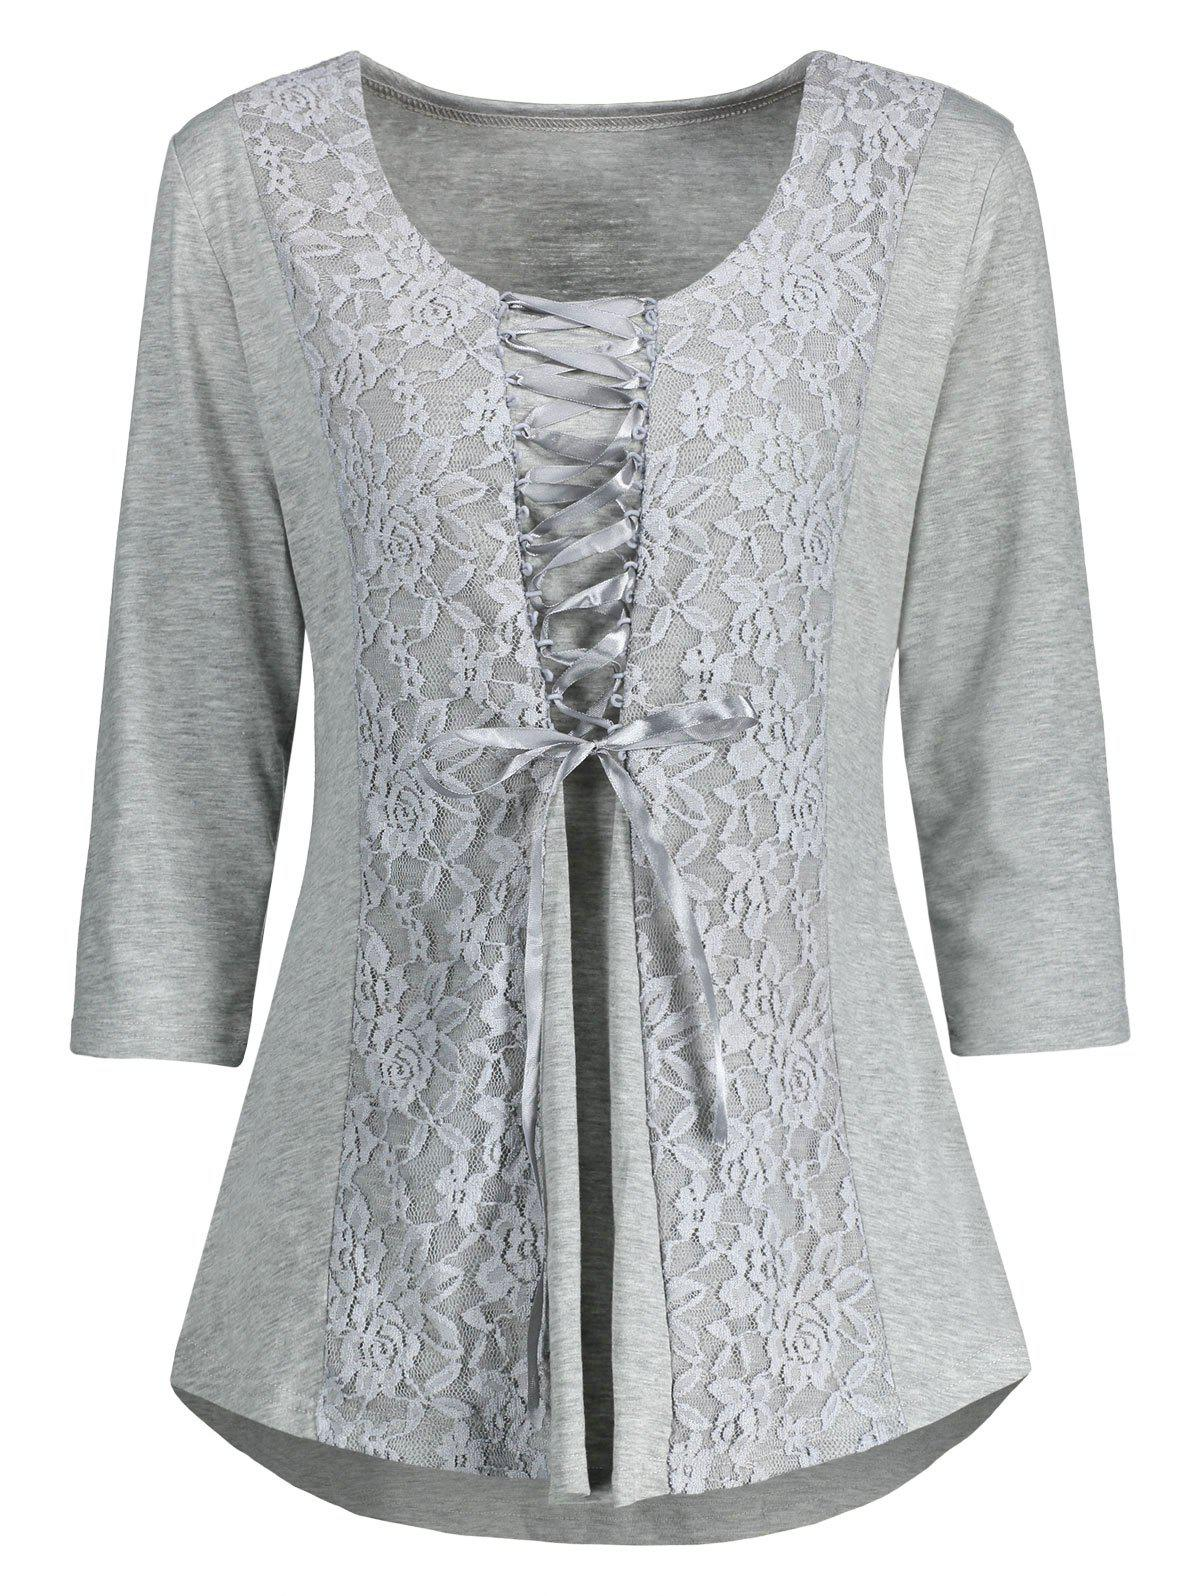 Lace Panel Lace Up Top - GRAY M